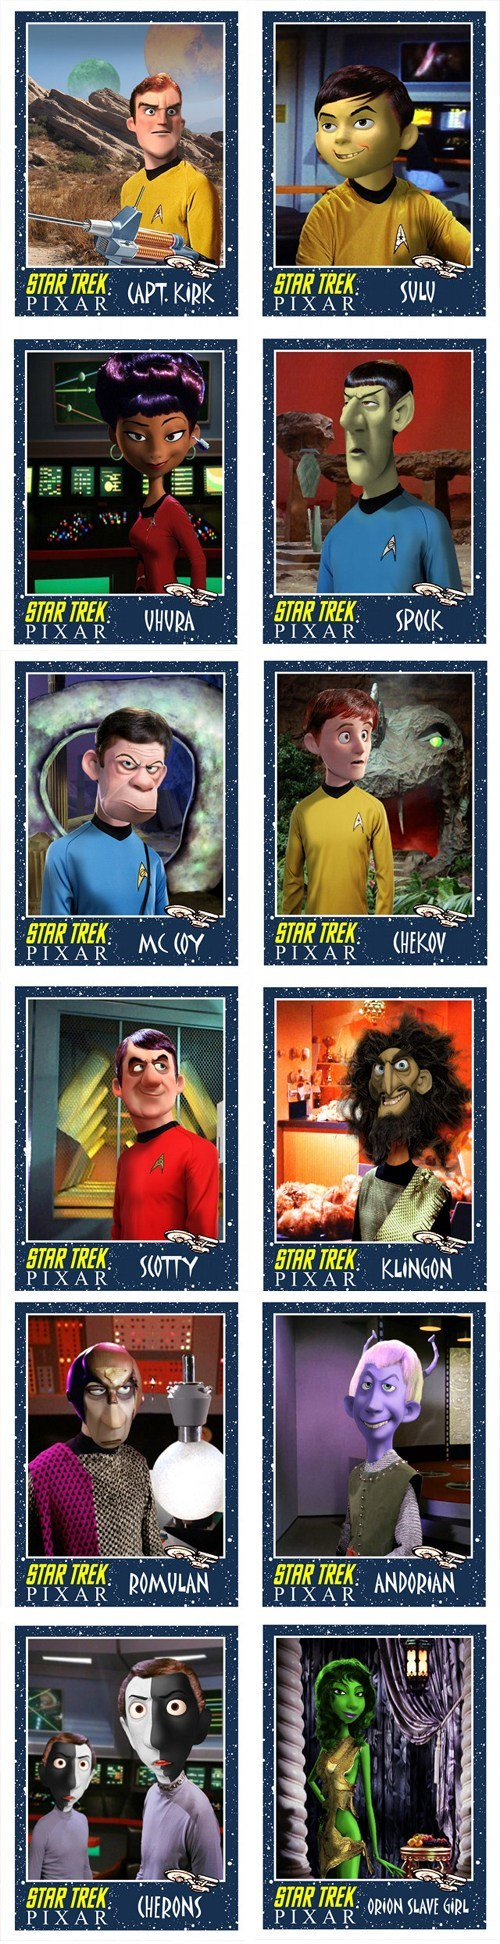 Captain Kirk Fan Art Star Trek mashups McCoy Spock pixar sulu uhura scotty - 7080186880